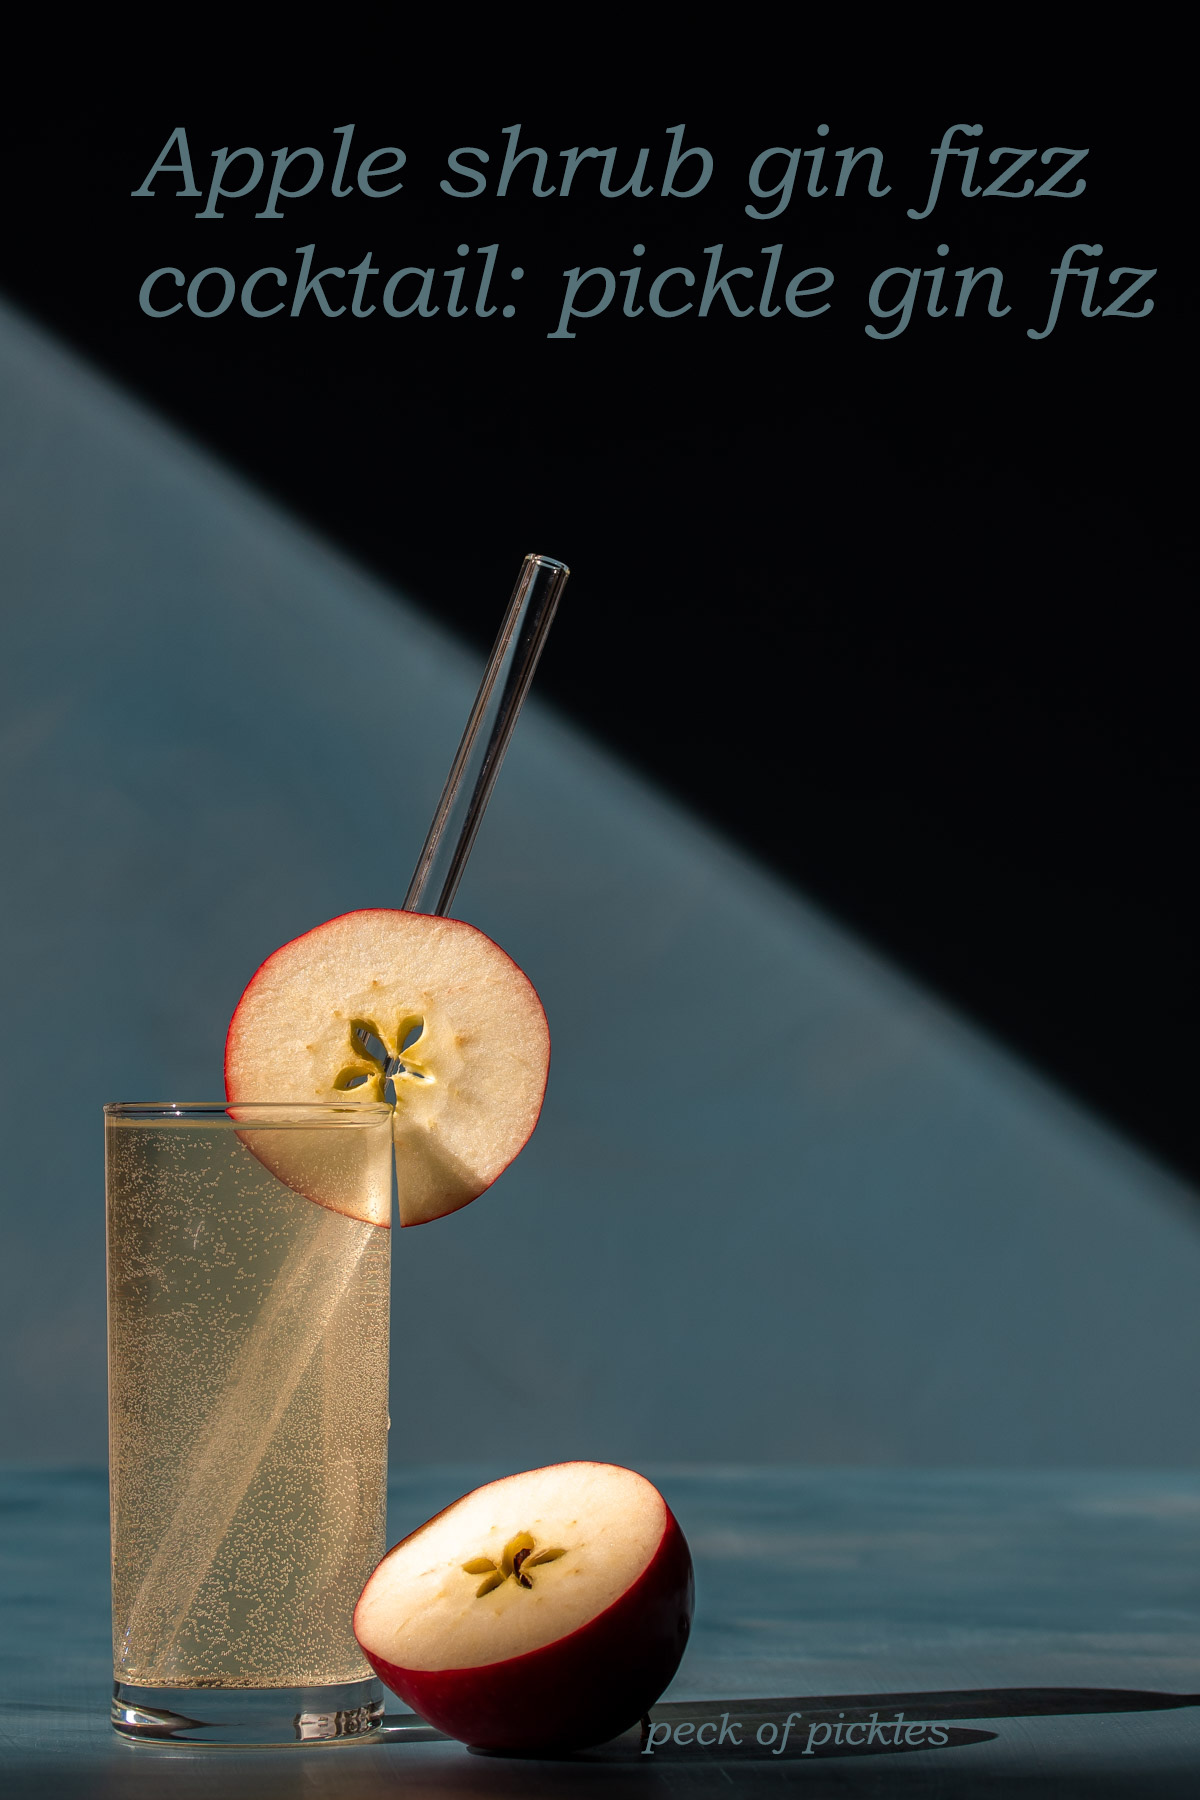 apple shrub gin fizz cocktail or pickle gin fiz on a blue background with hard light and shadows